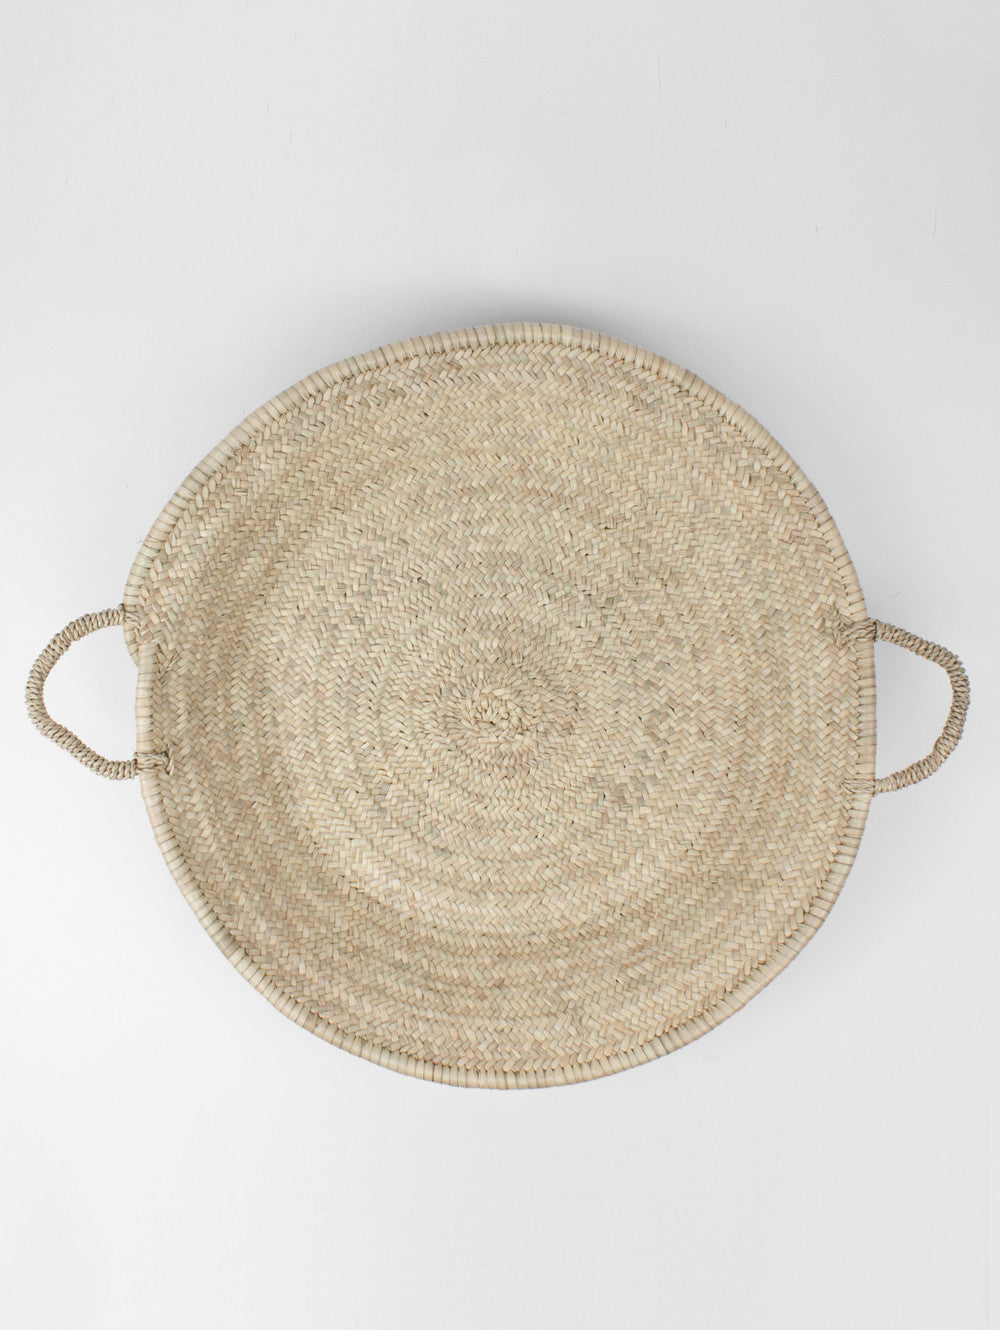 Hand-crafted Woven Platter